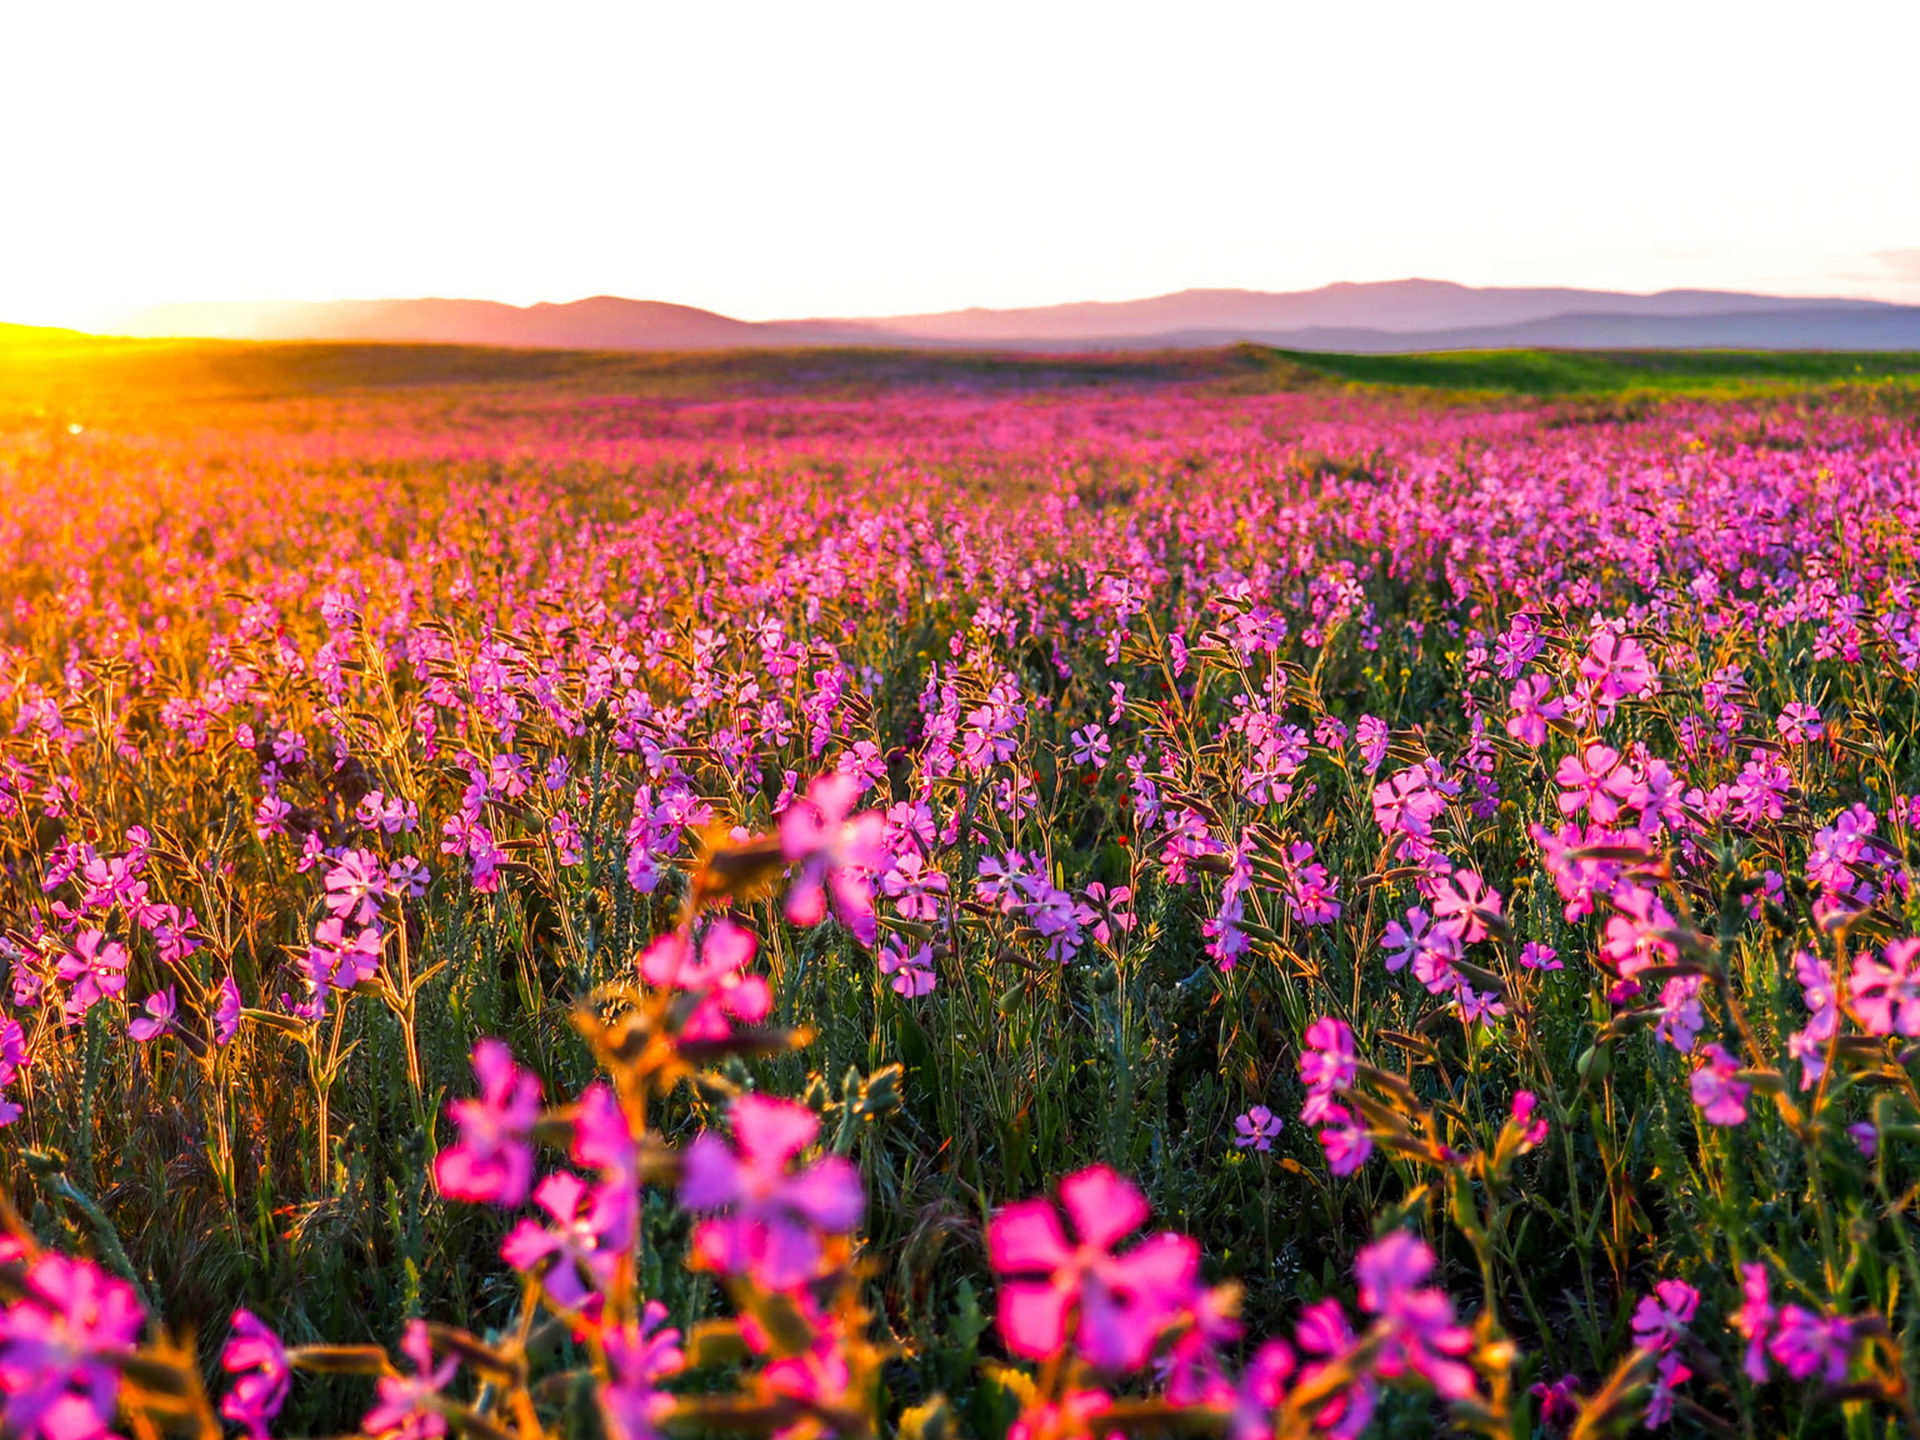 Fall Mist Wallpaper Sunrise Field With Pink Flowers In The Early Morning Hd